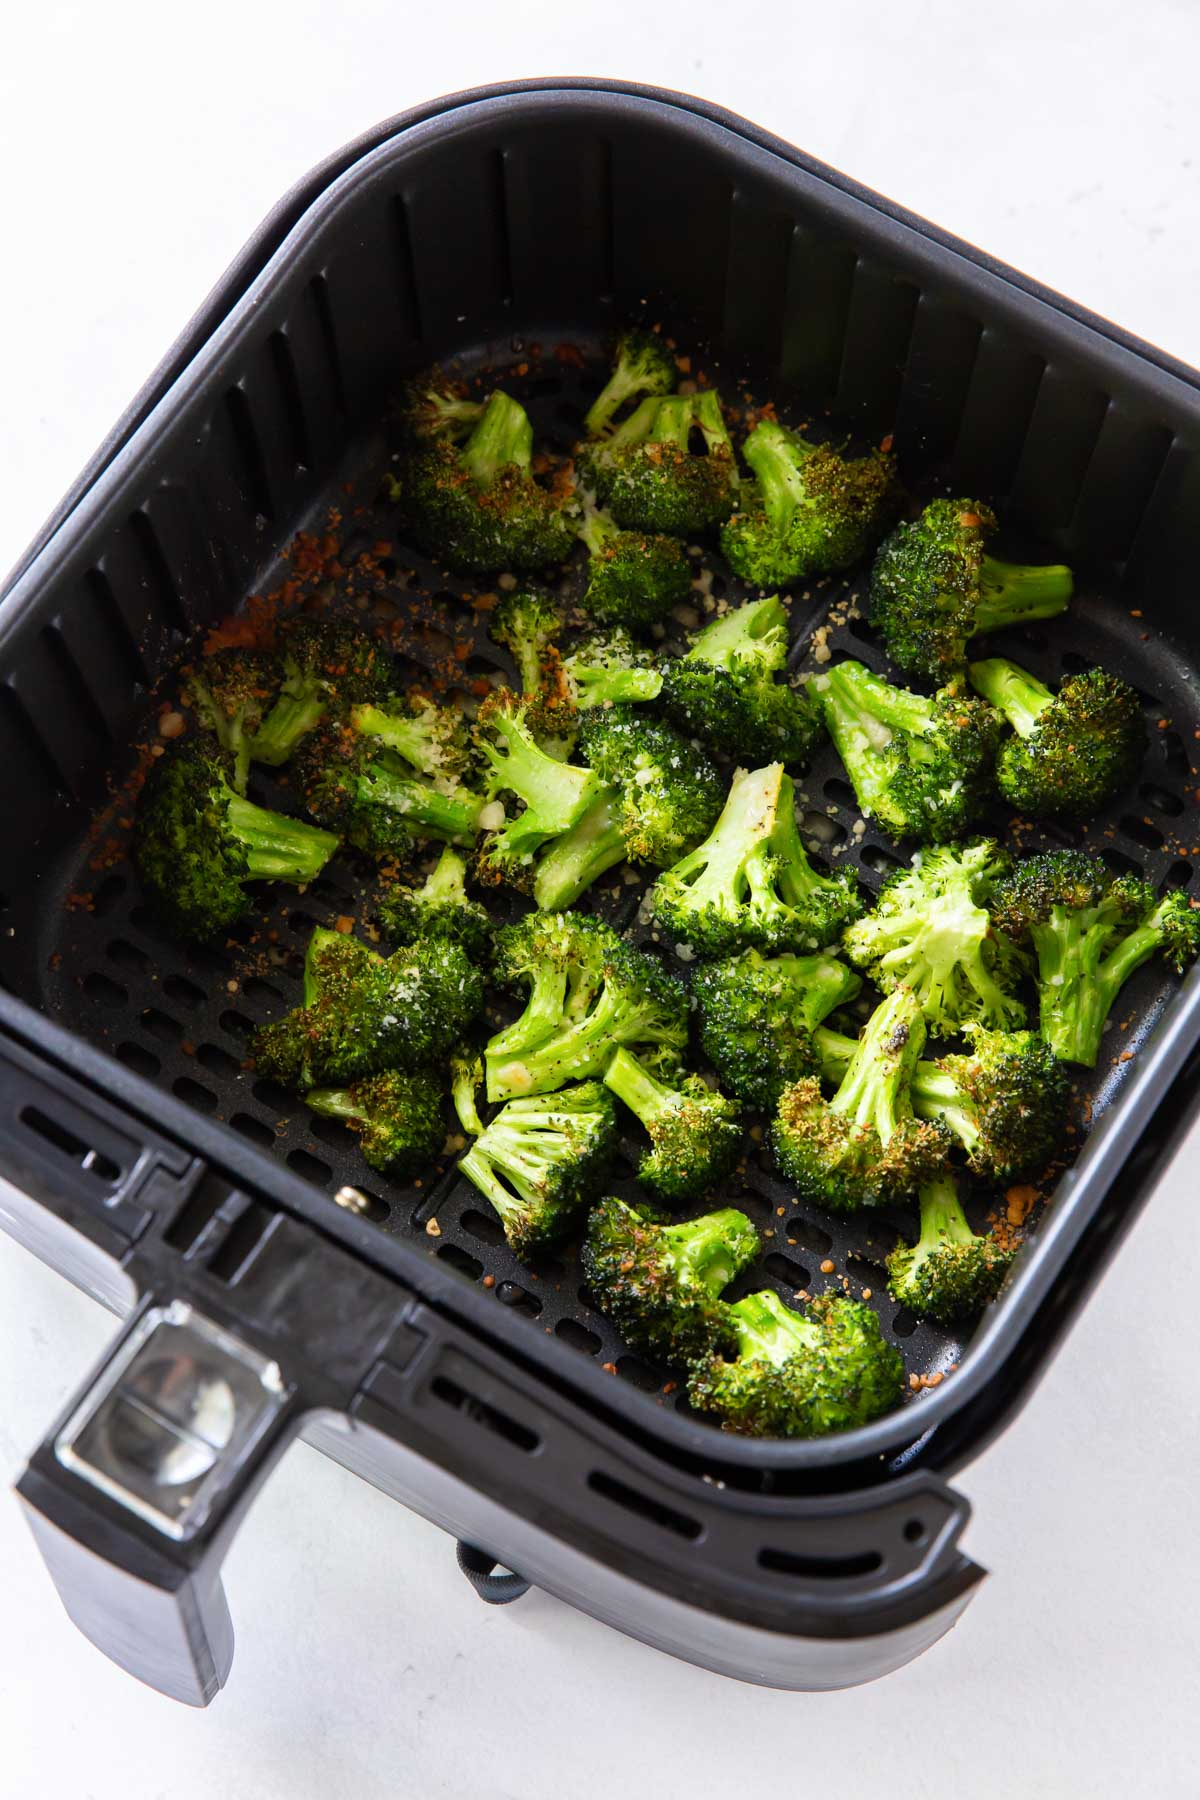 cooked broccoli in air fryer basket